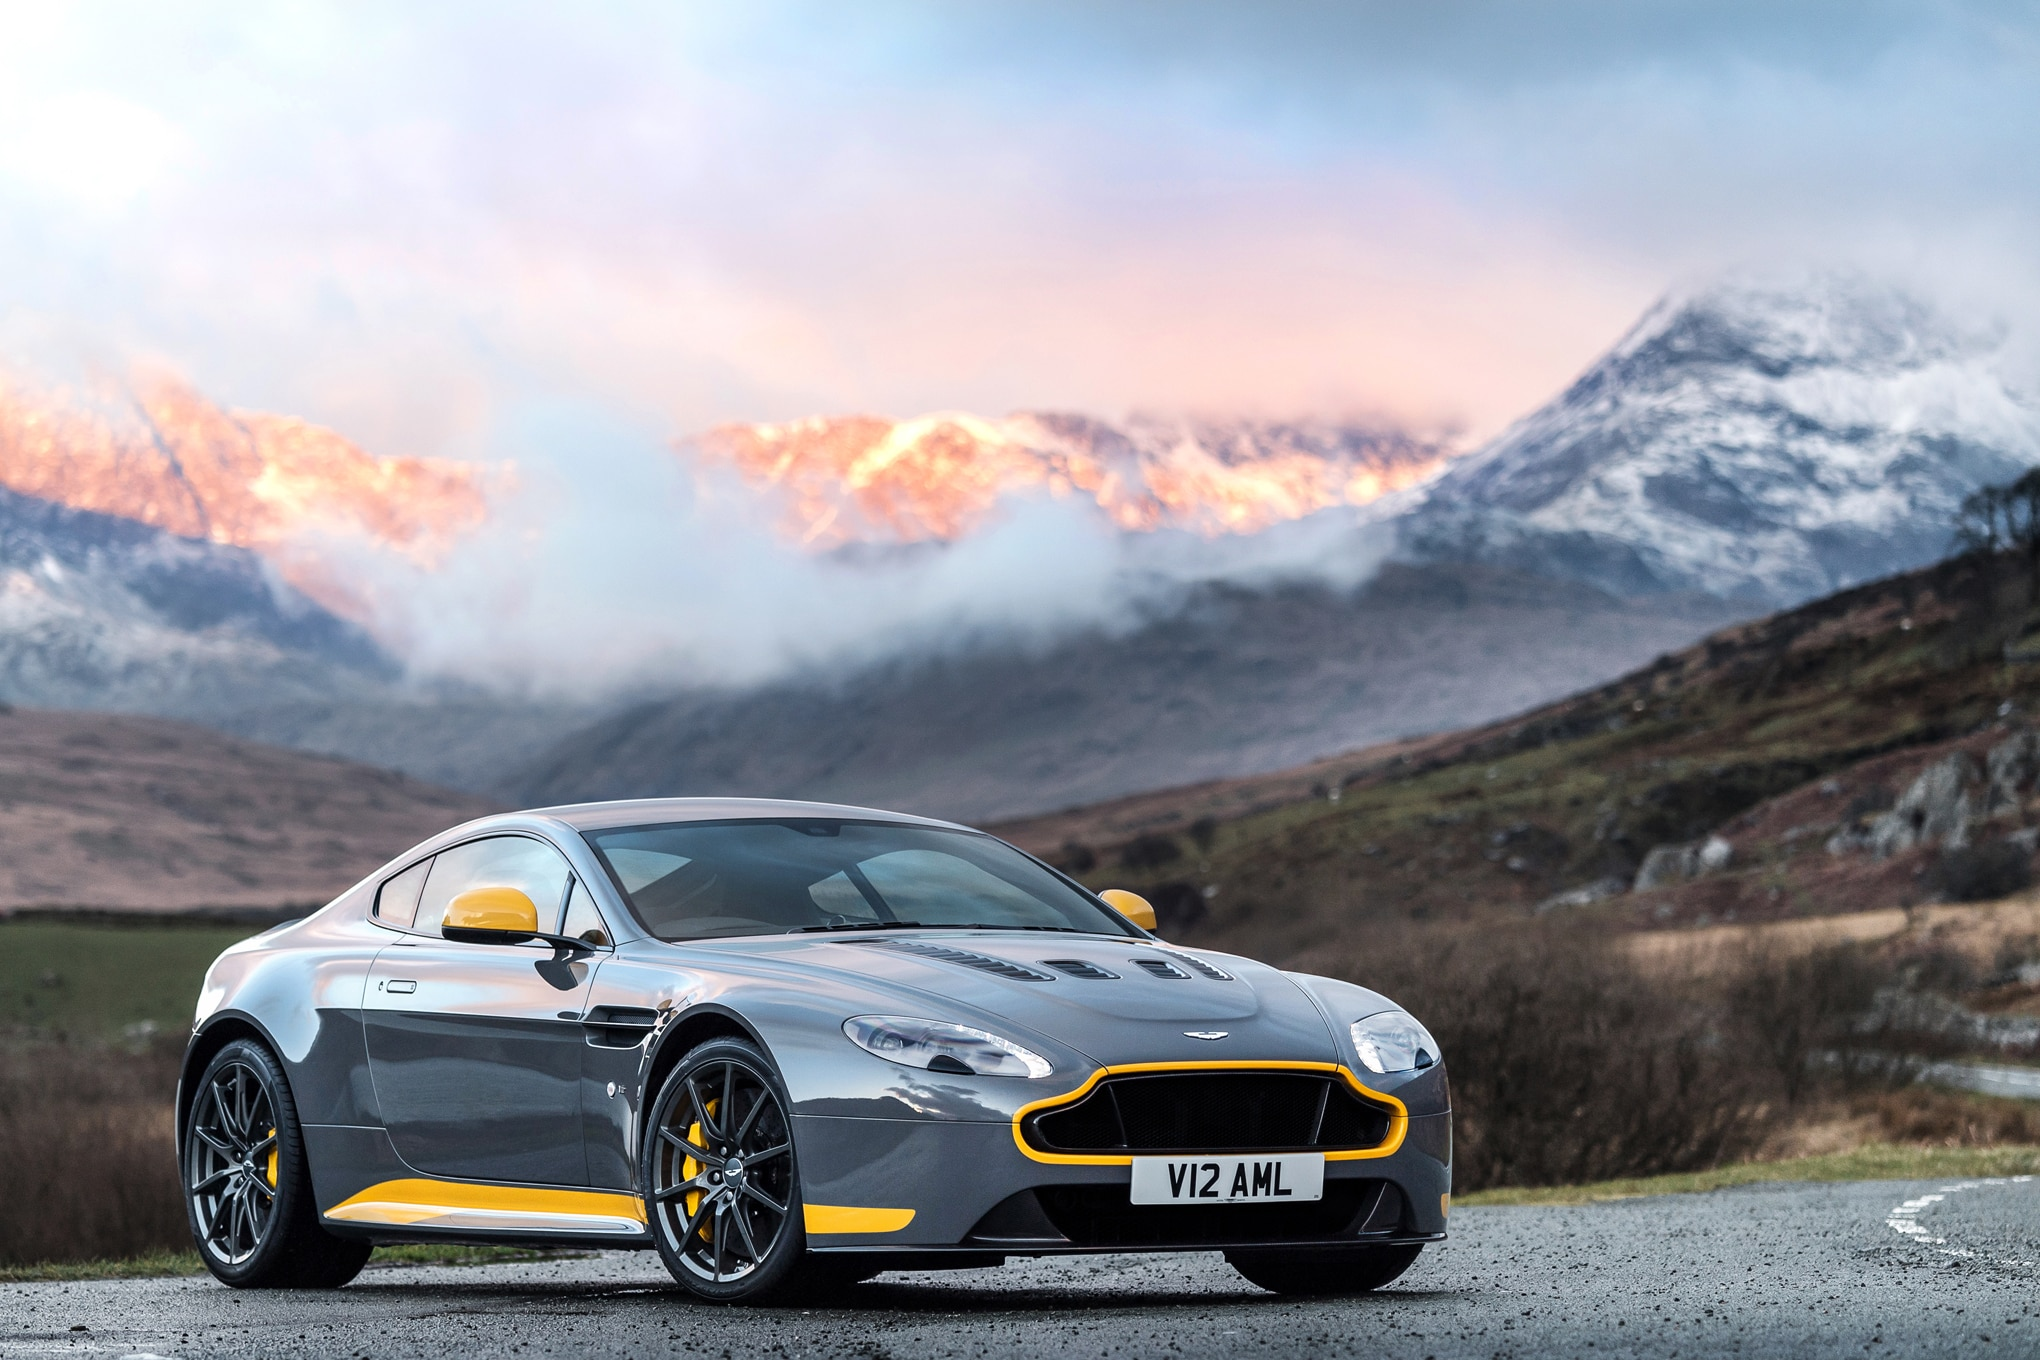 Watch and Listen to the Aston Martin V12 Vantage S ...